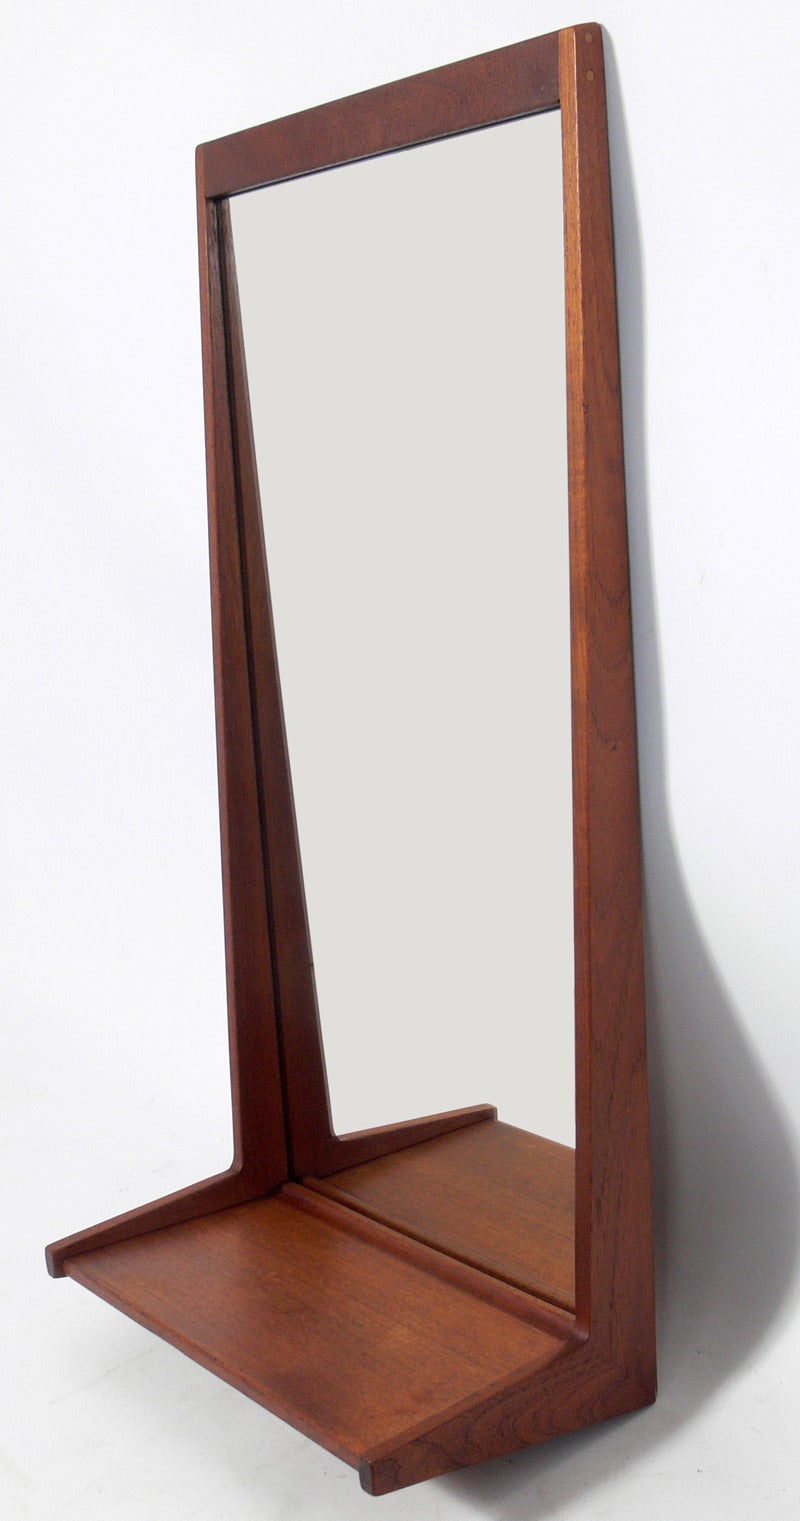 Danish modern console table mirror by aksel kjersgaard at - Modern console table with mirror ...